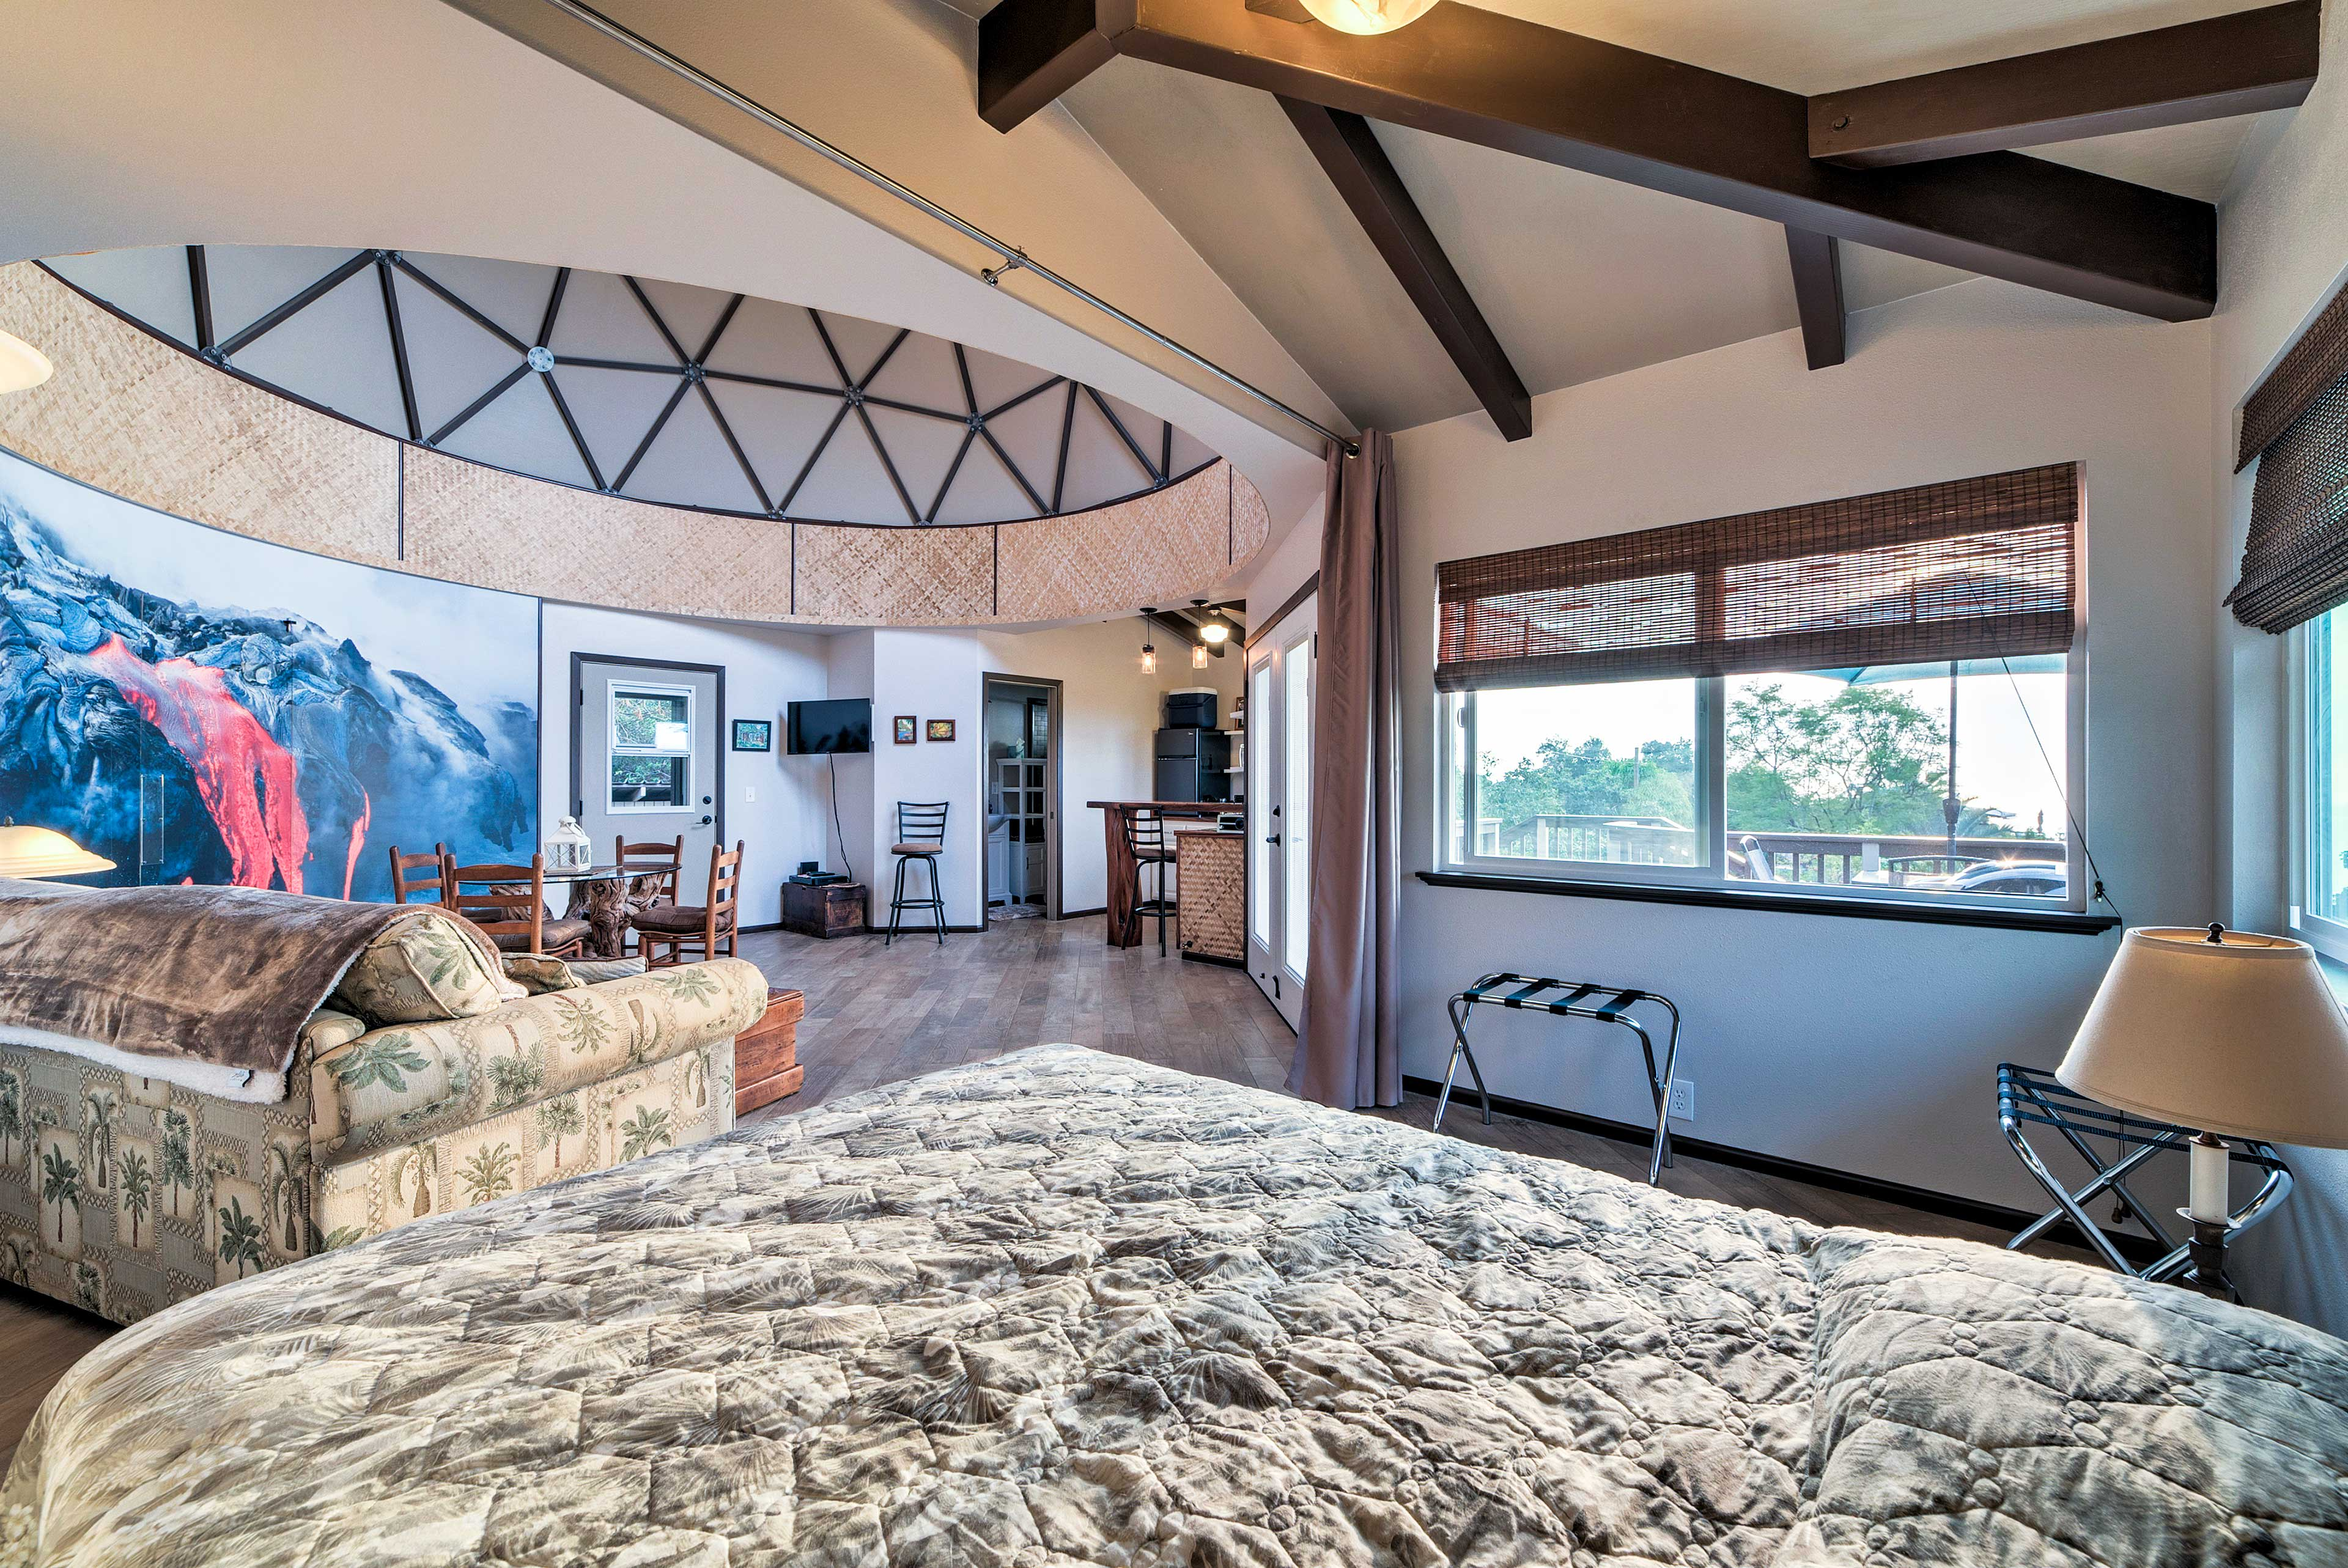 This unique property is complete with a mountain mural and soaring ceilings.